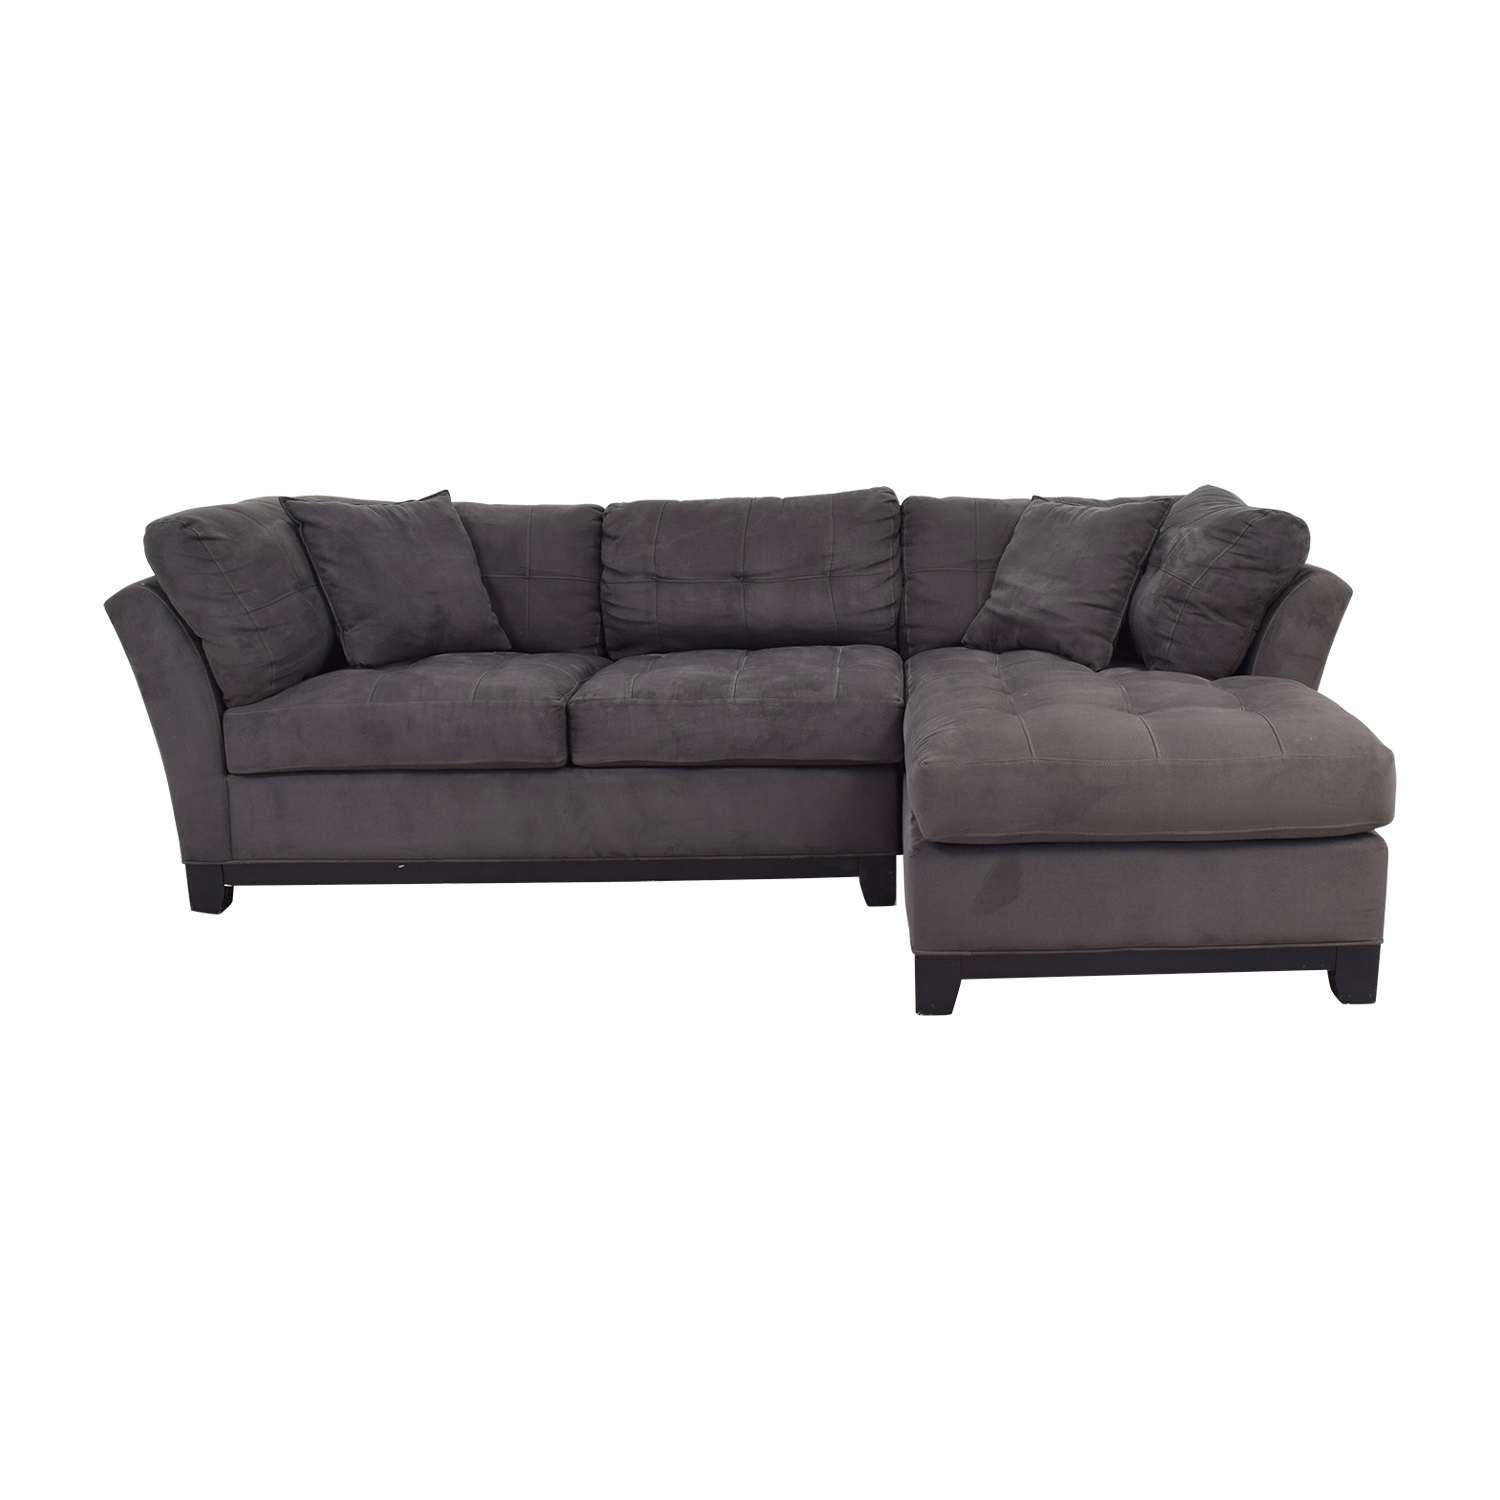 Raymour & Flanigan Raymour & Flanigan Charcoal Tufted Chaise Sectional used